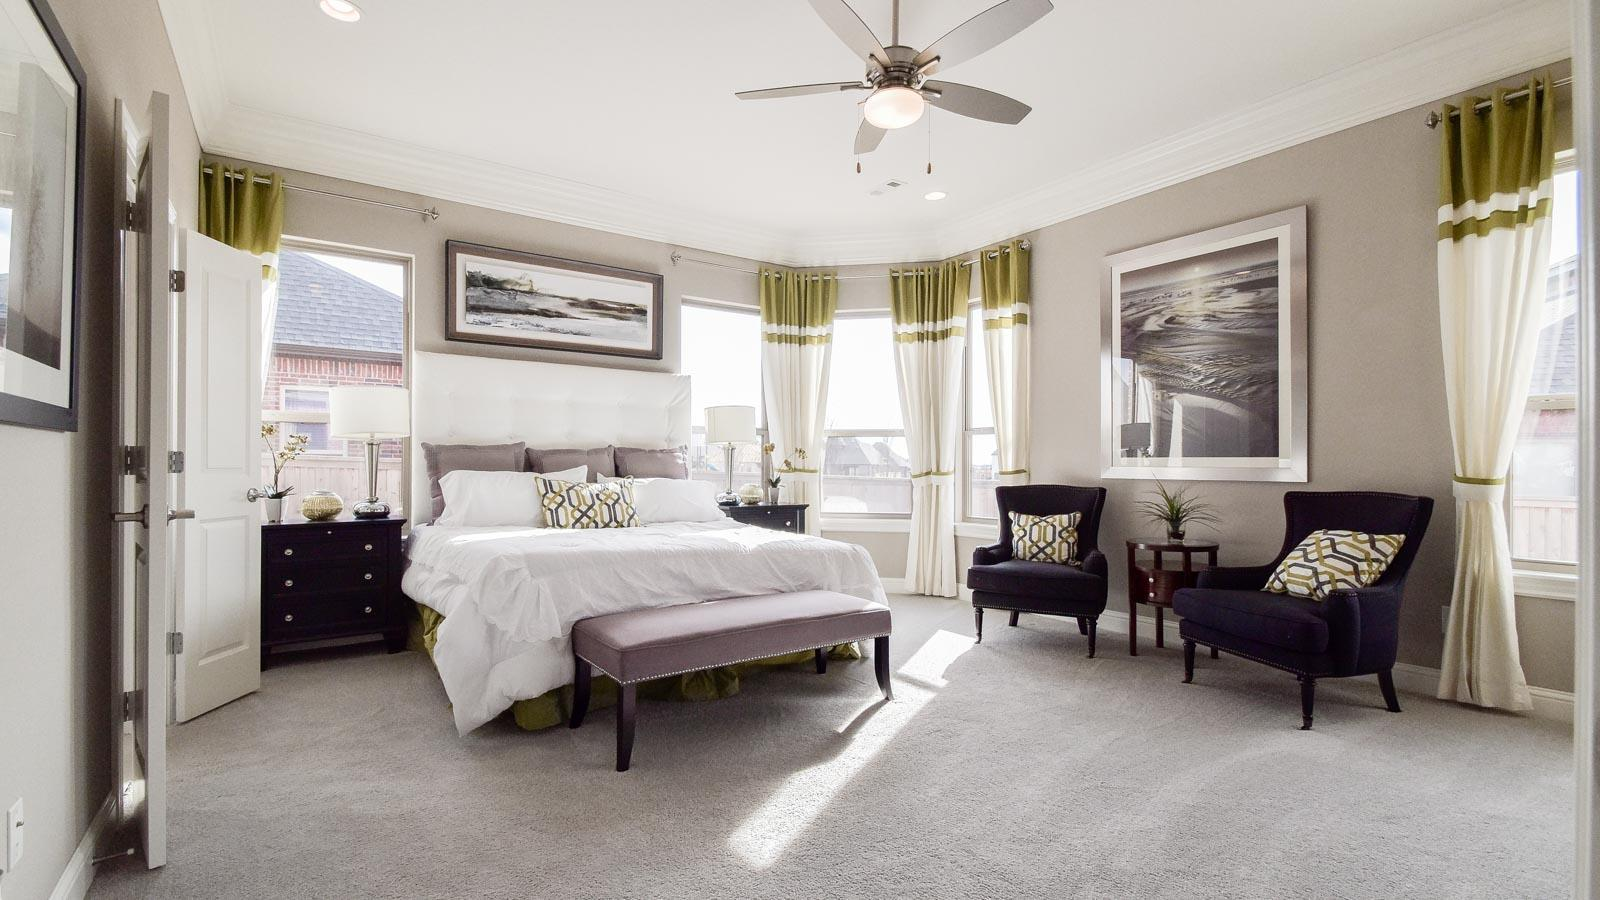 Bedroom featured in the Dogwood By Buffington Homes in Fayetteville, AR